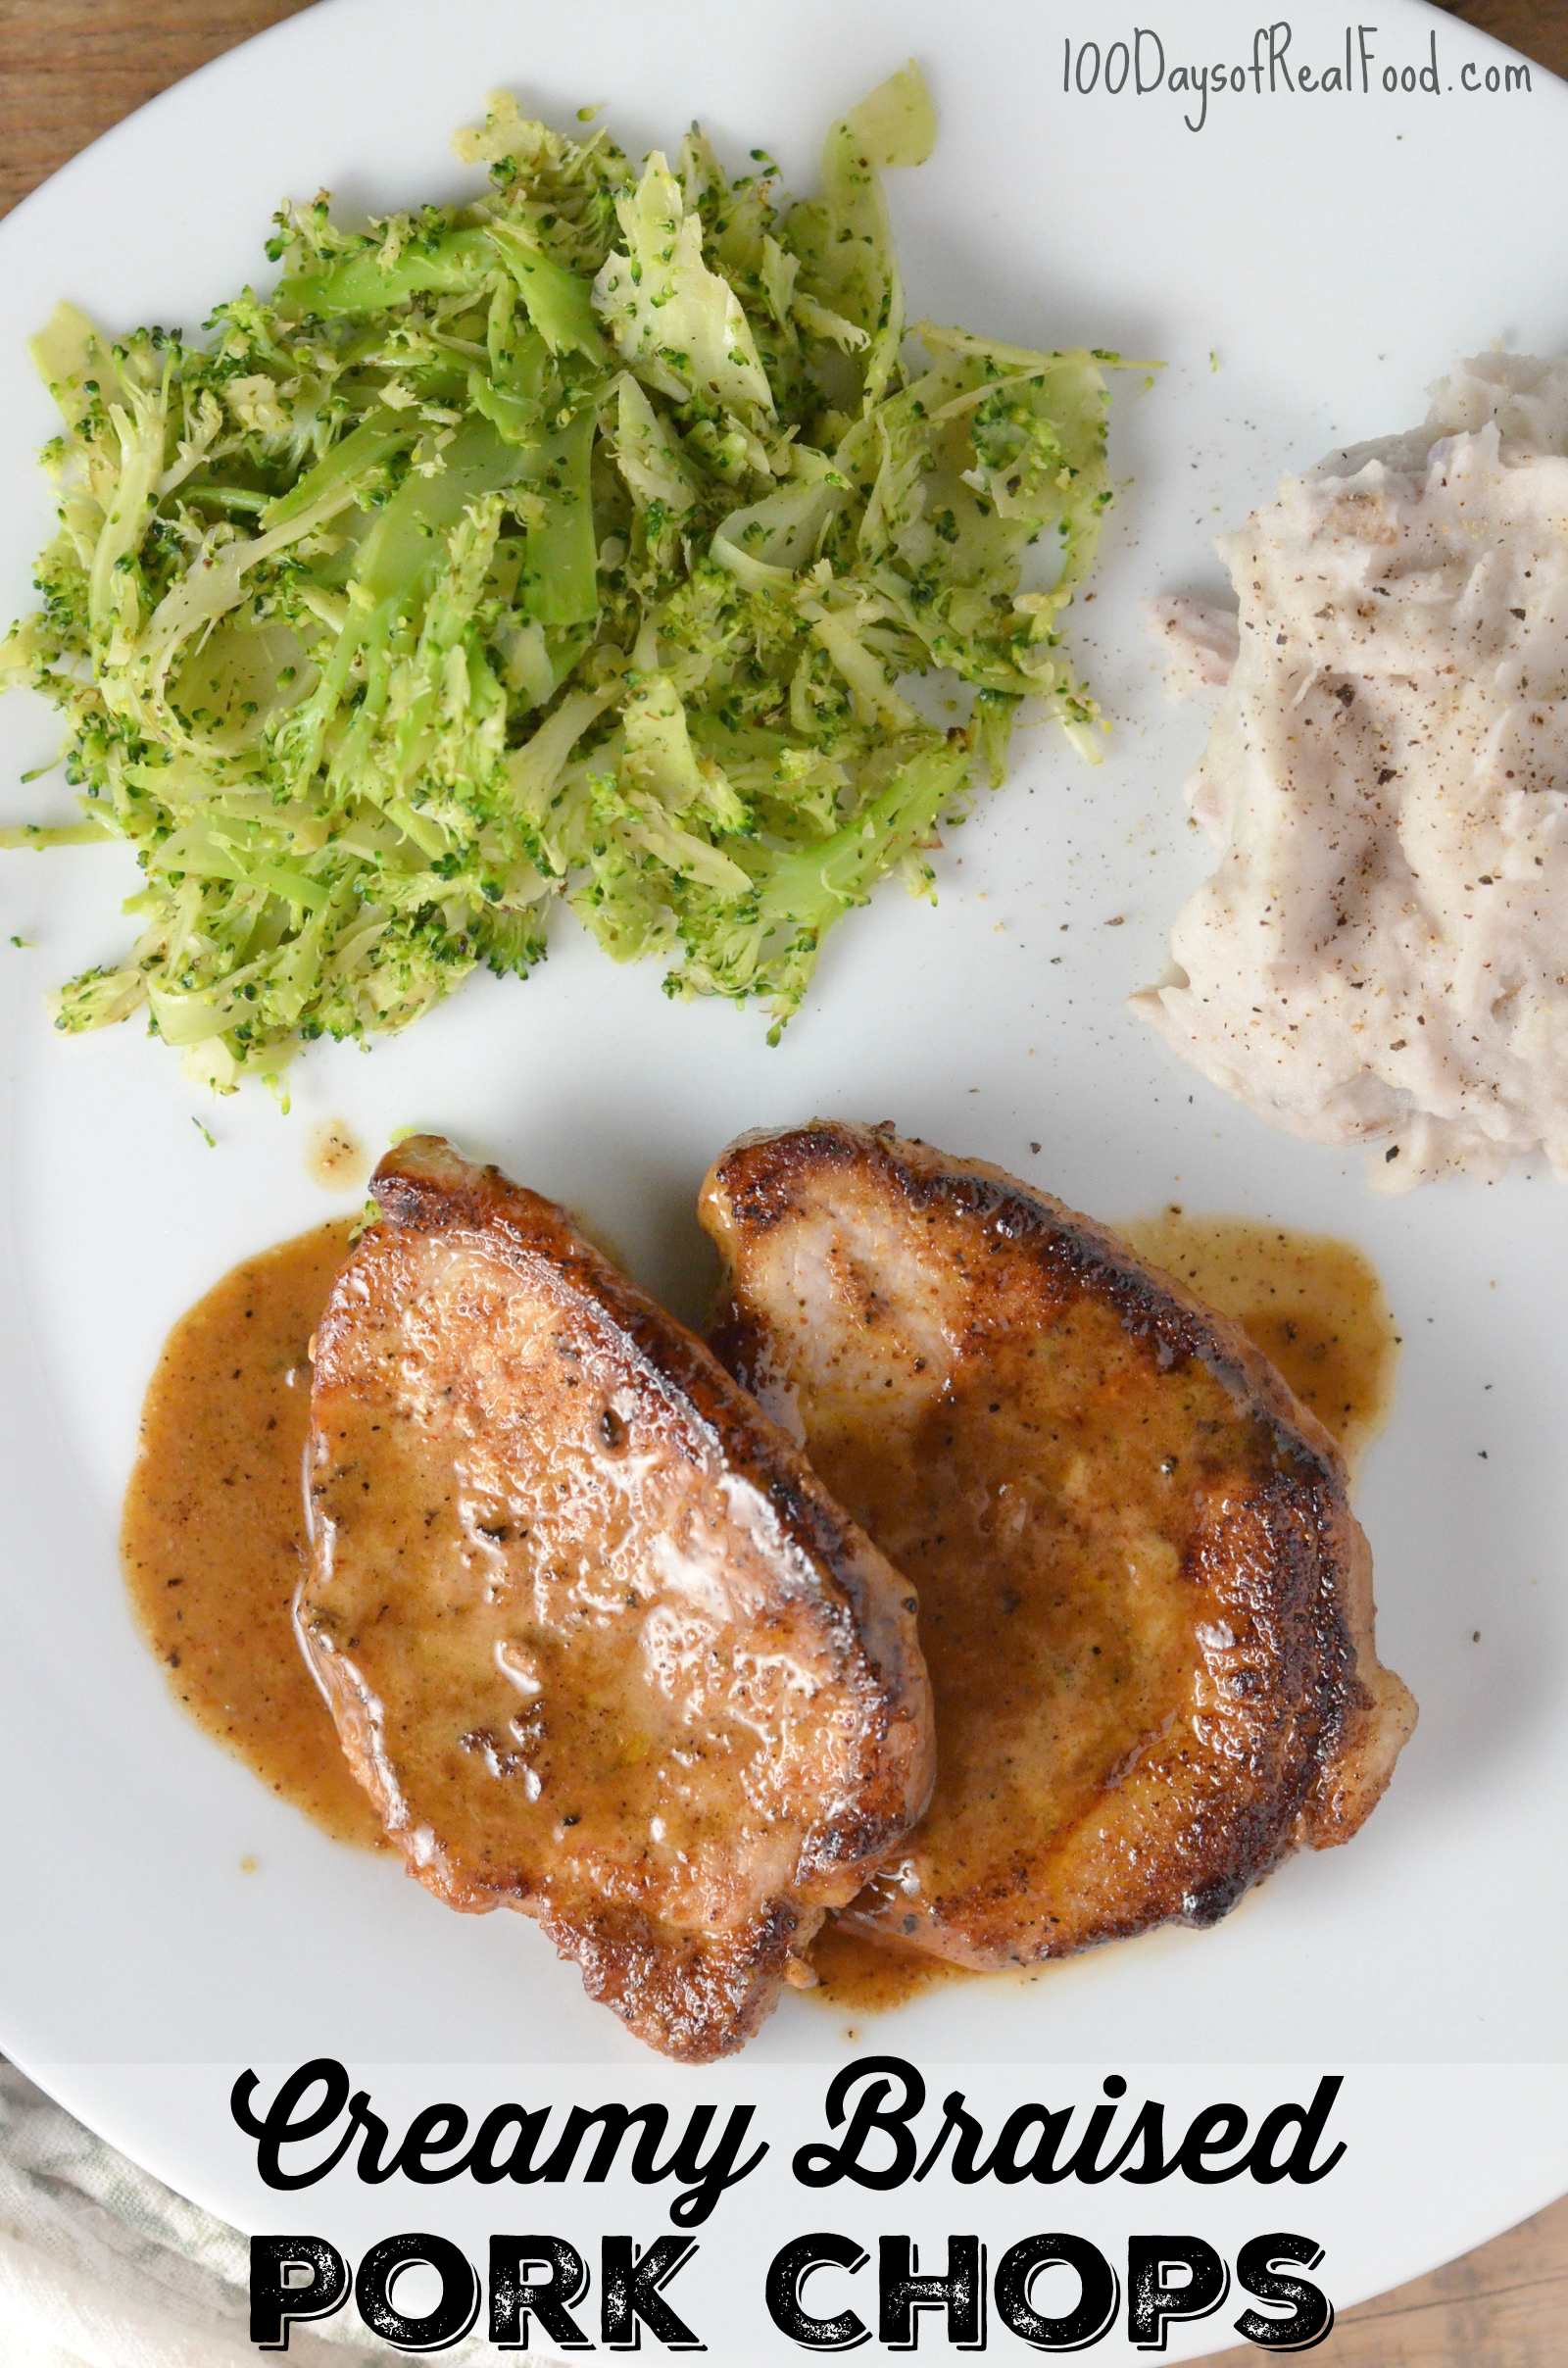 Creamy Braised Pork Chops on 100 Days of Real Food